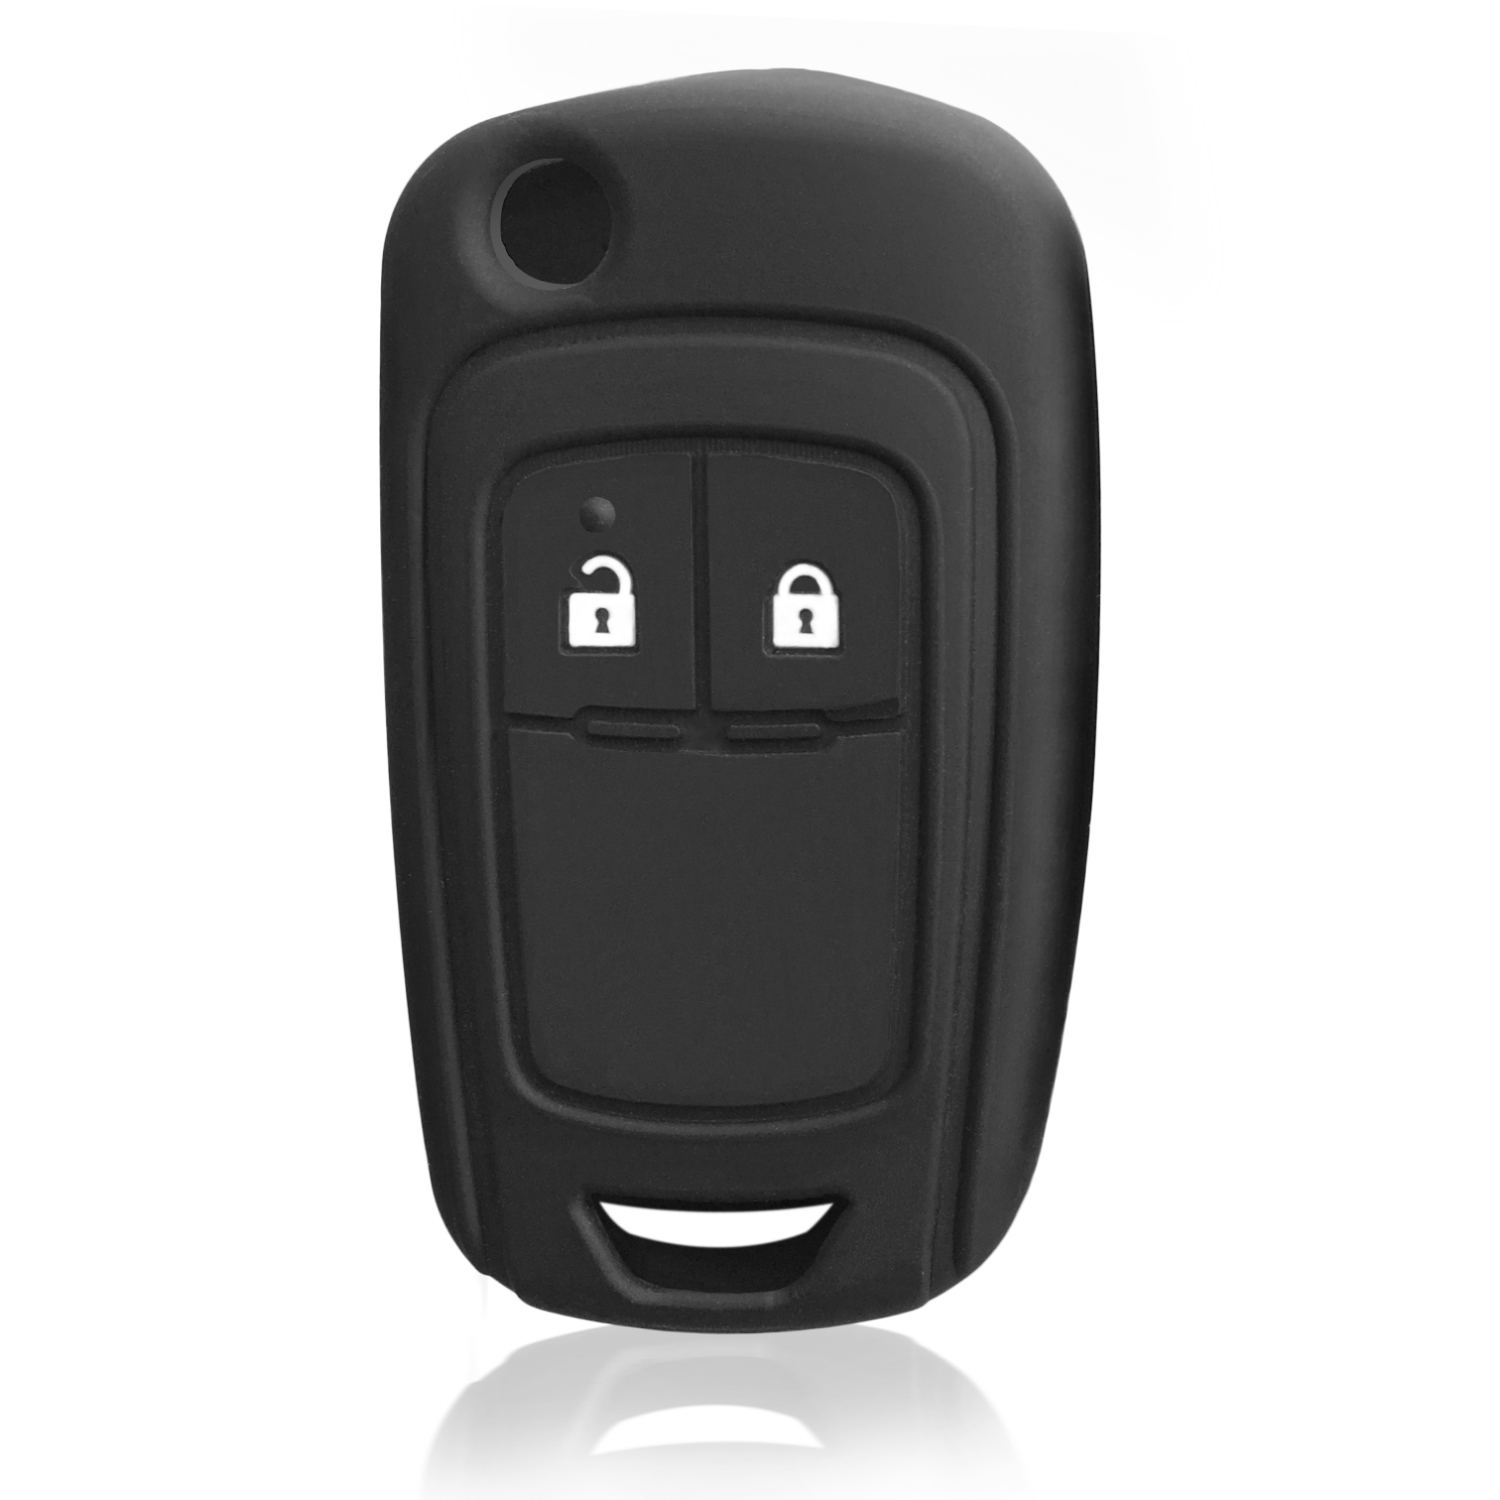 Rubber Car Remote Key Fob Shell Cover Case For Opel Astra J Corsa D Zafira C Mokka Insignia Cascada Karl Adam Meriva Key Cover